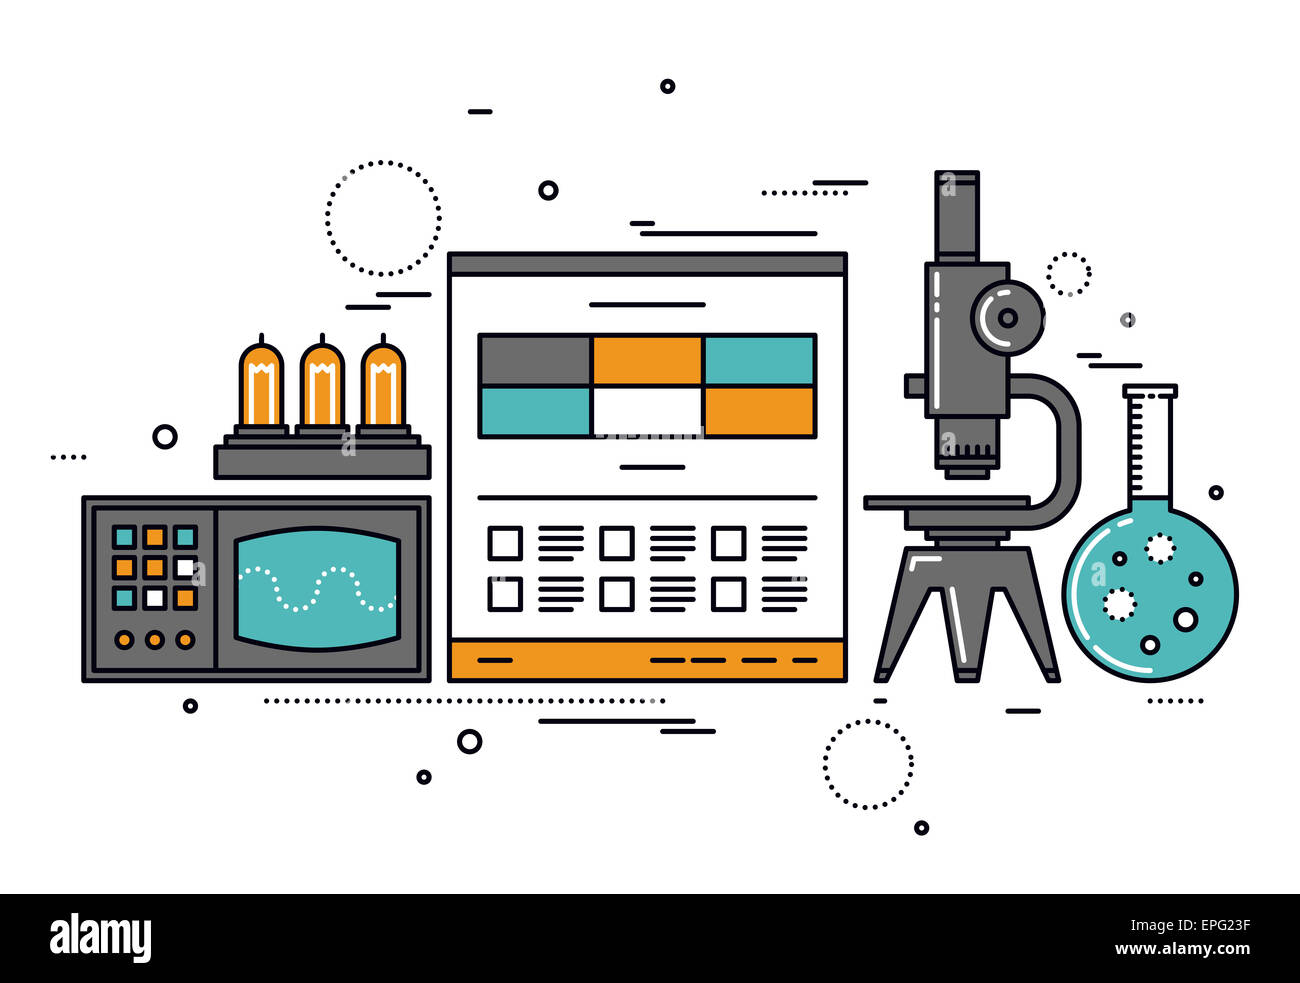 Electrical science research, technical documentation on website, vacuum lamp tube and retro oscilloscope. - Stock Image